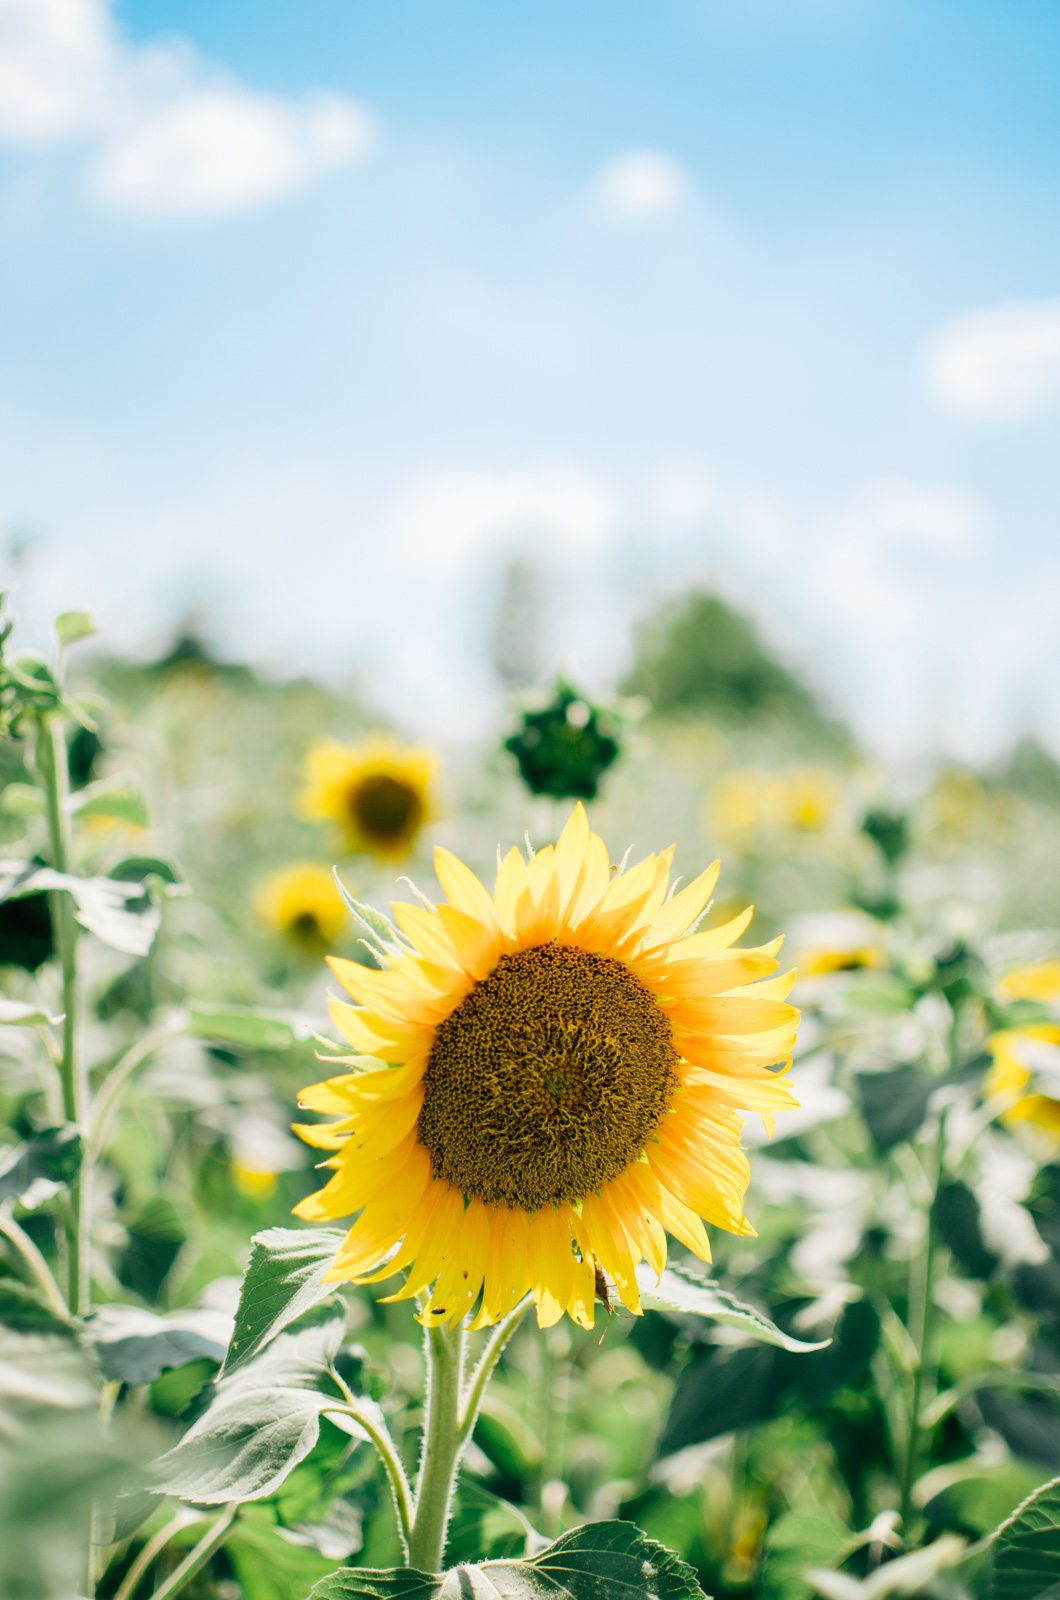 richmond virginia sunflower picking - richmond virginia blog | For more cute summer outfits, head to bylaurenm.com